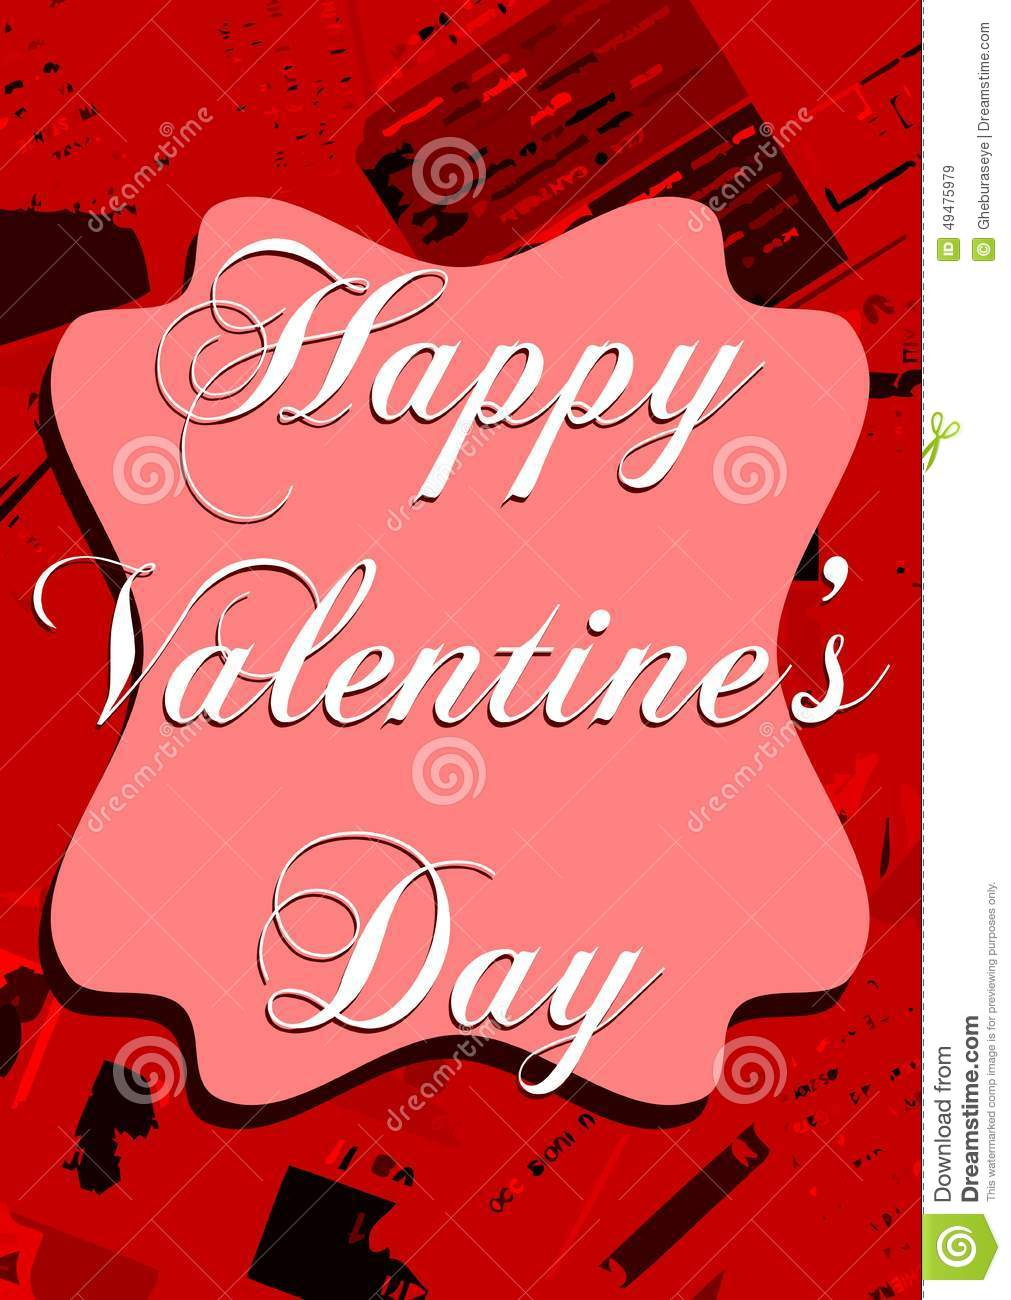 Colorful saint valentines day greeting card stock illustration an idea that can be used in all saint valentines day greeting cards m4hsunfo